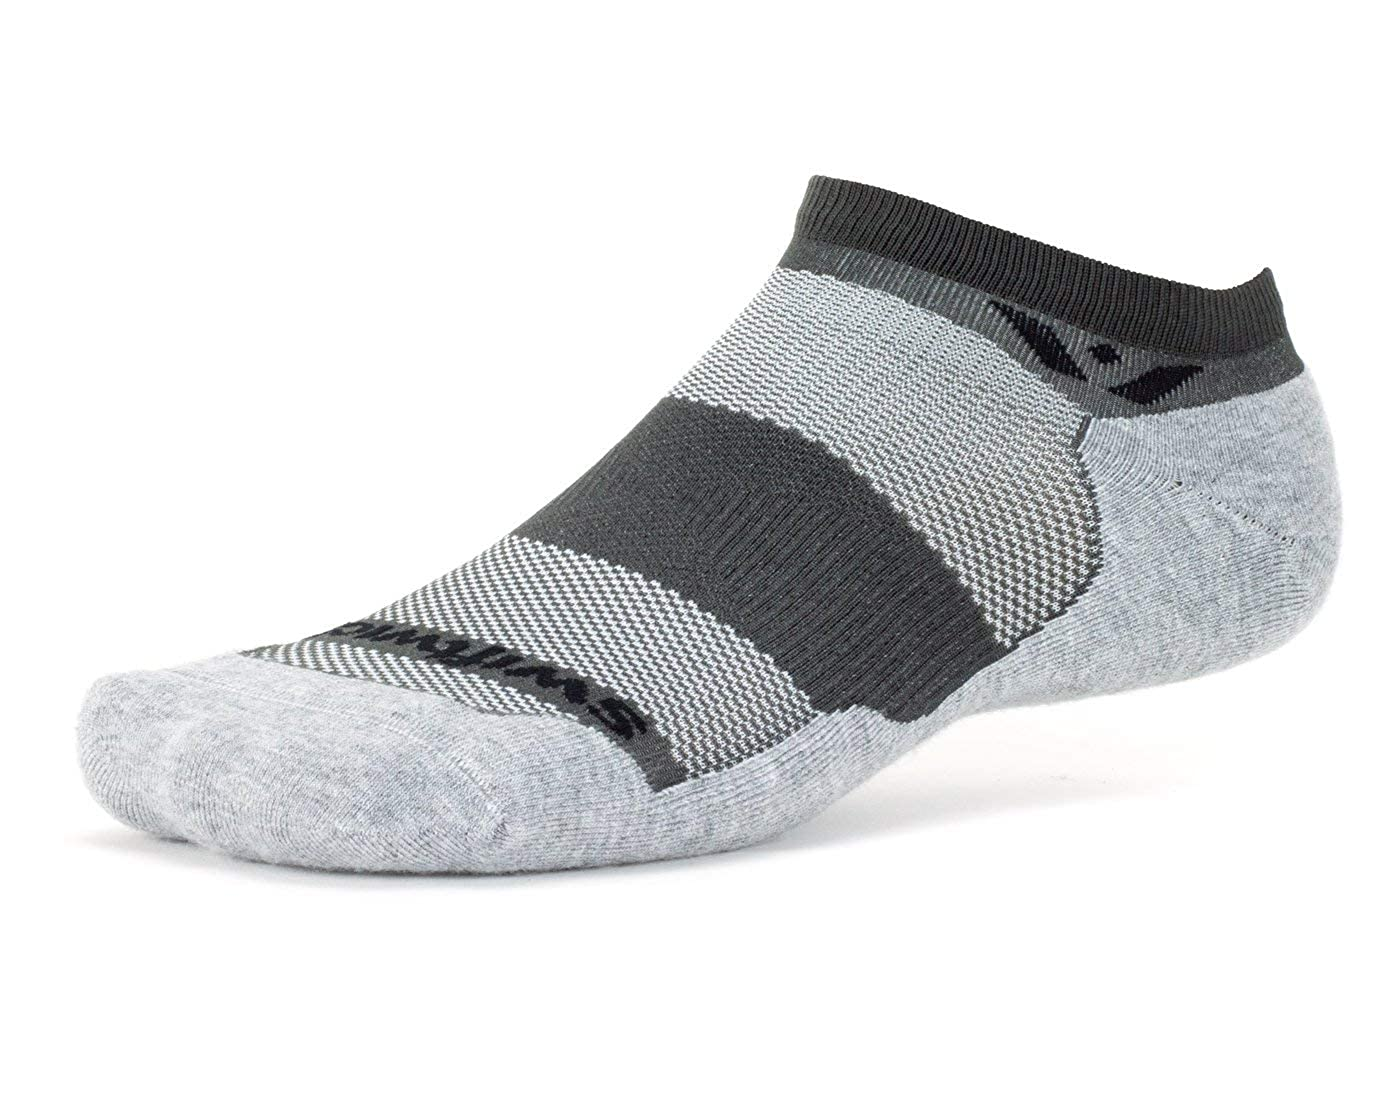 Swiftwick – MAXUS ZERO | Socks Built for Running Golf | Plush Cushion ALL DAY Comfort No Show Socks